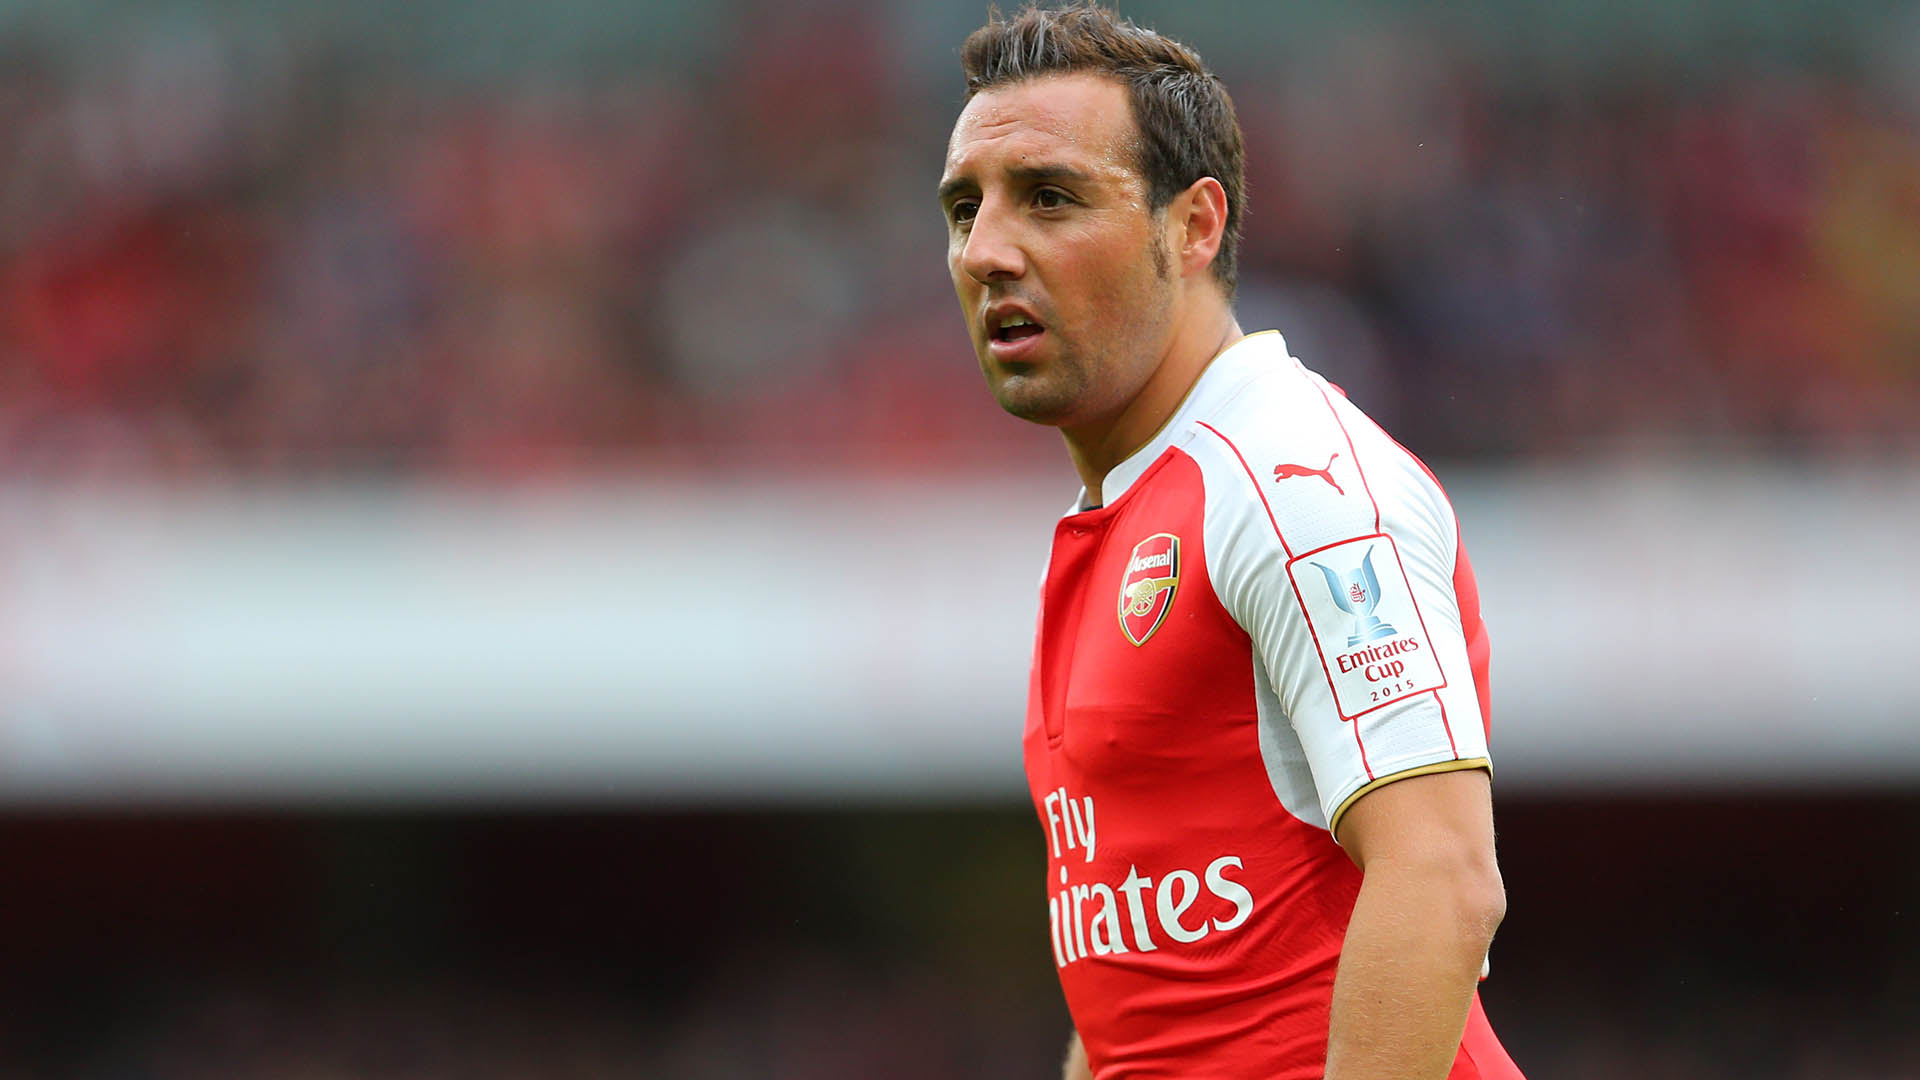 LONDON, ENGLAND - JULY 26: Santi Cazorla of Arsenal during the Emirates Cup match between Arsenal and VfL Wolfsburg at Emirates Stadium on July 26, 2015 in London, England.  (Photo by Catherine Ivill - AMA/Getty Images).